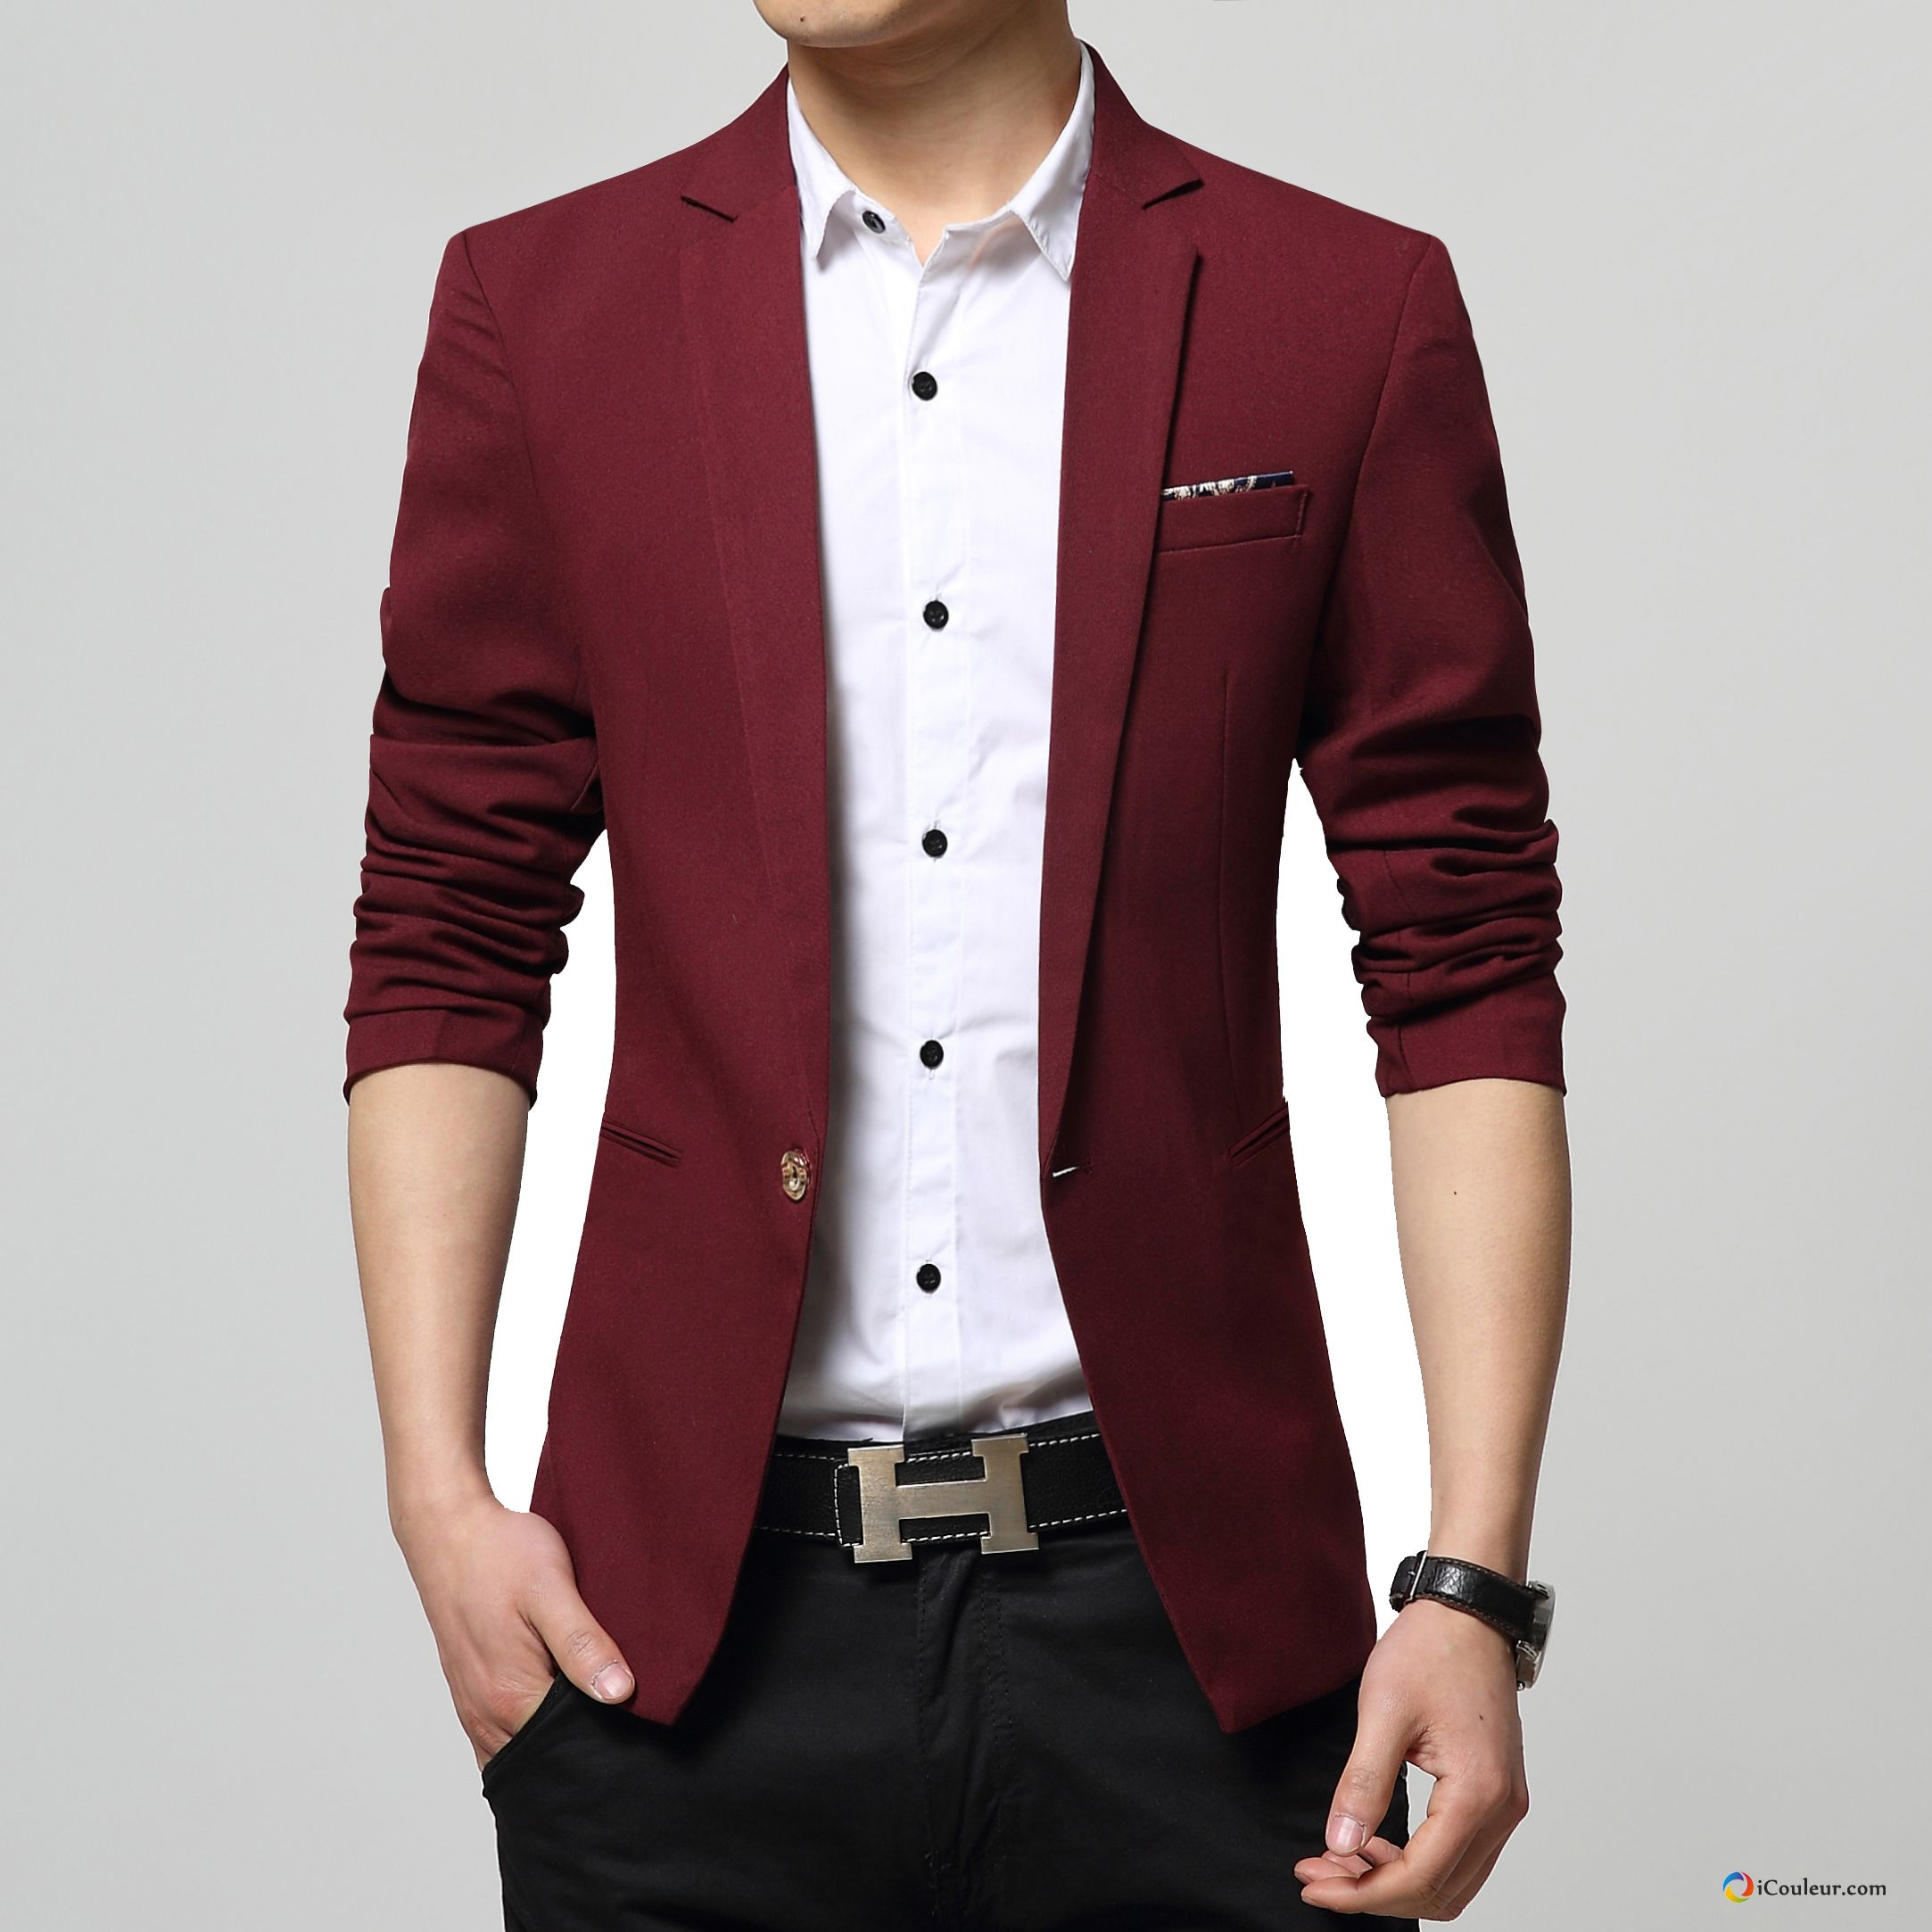 homme une veste jeunesse costume petit costume printemps blazer rouge pas cher. Black Bedroom Furniture Sets. Home Design Ideas